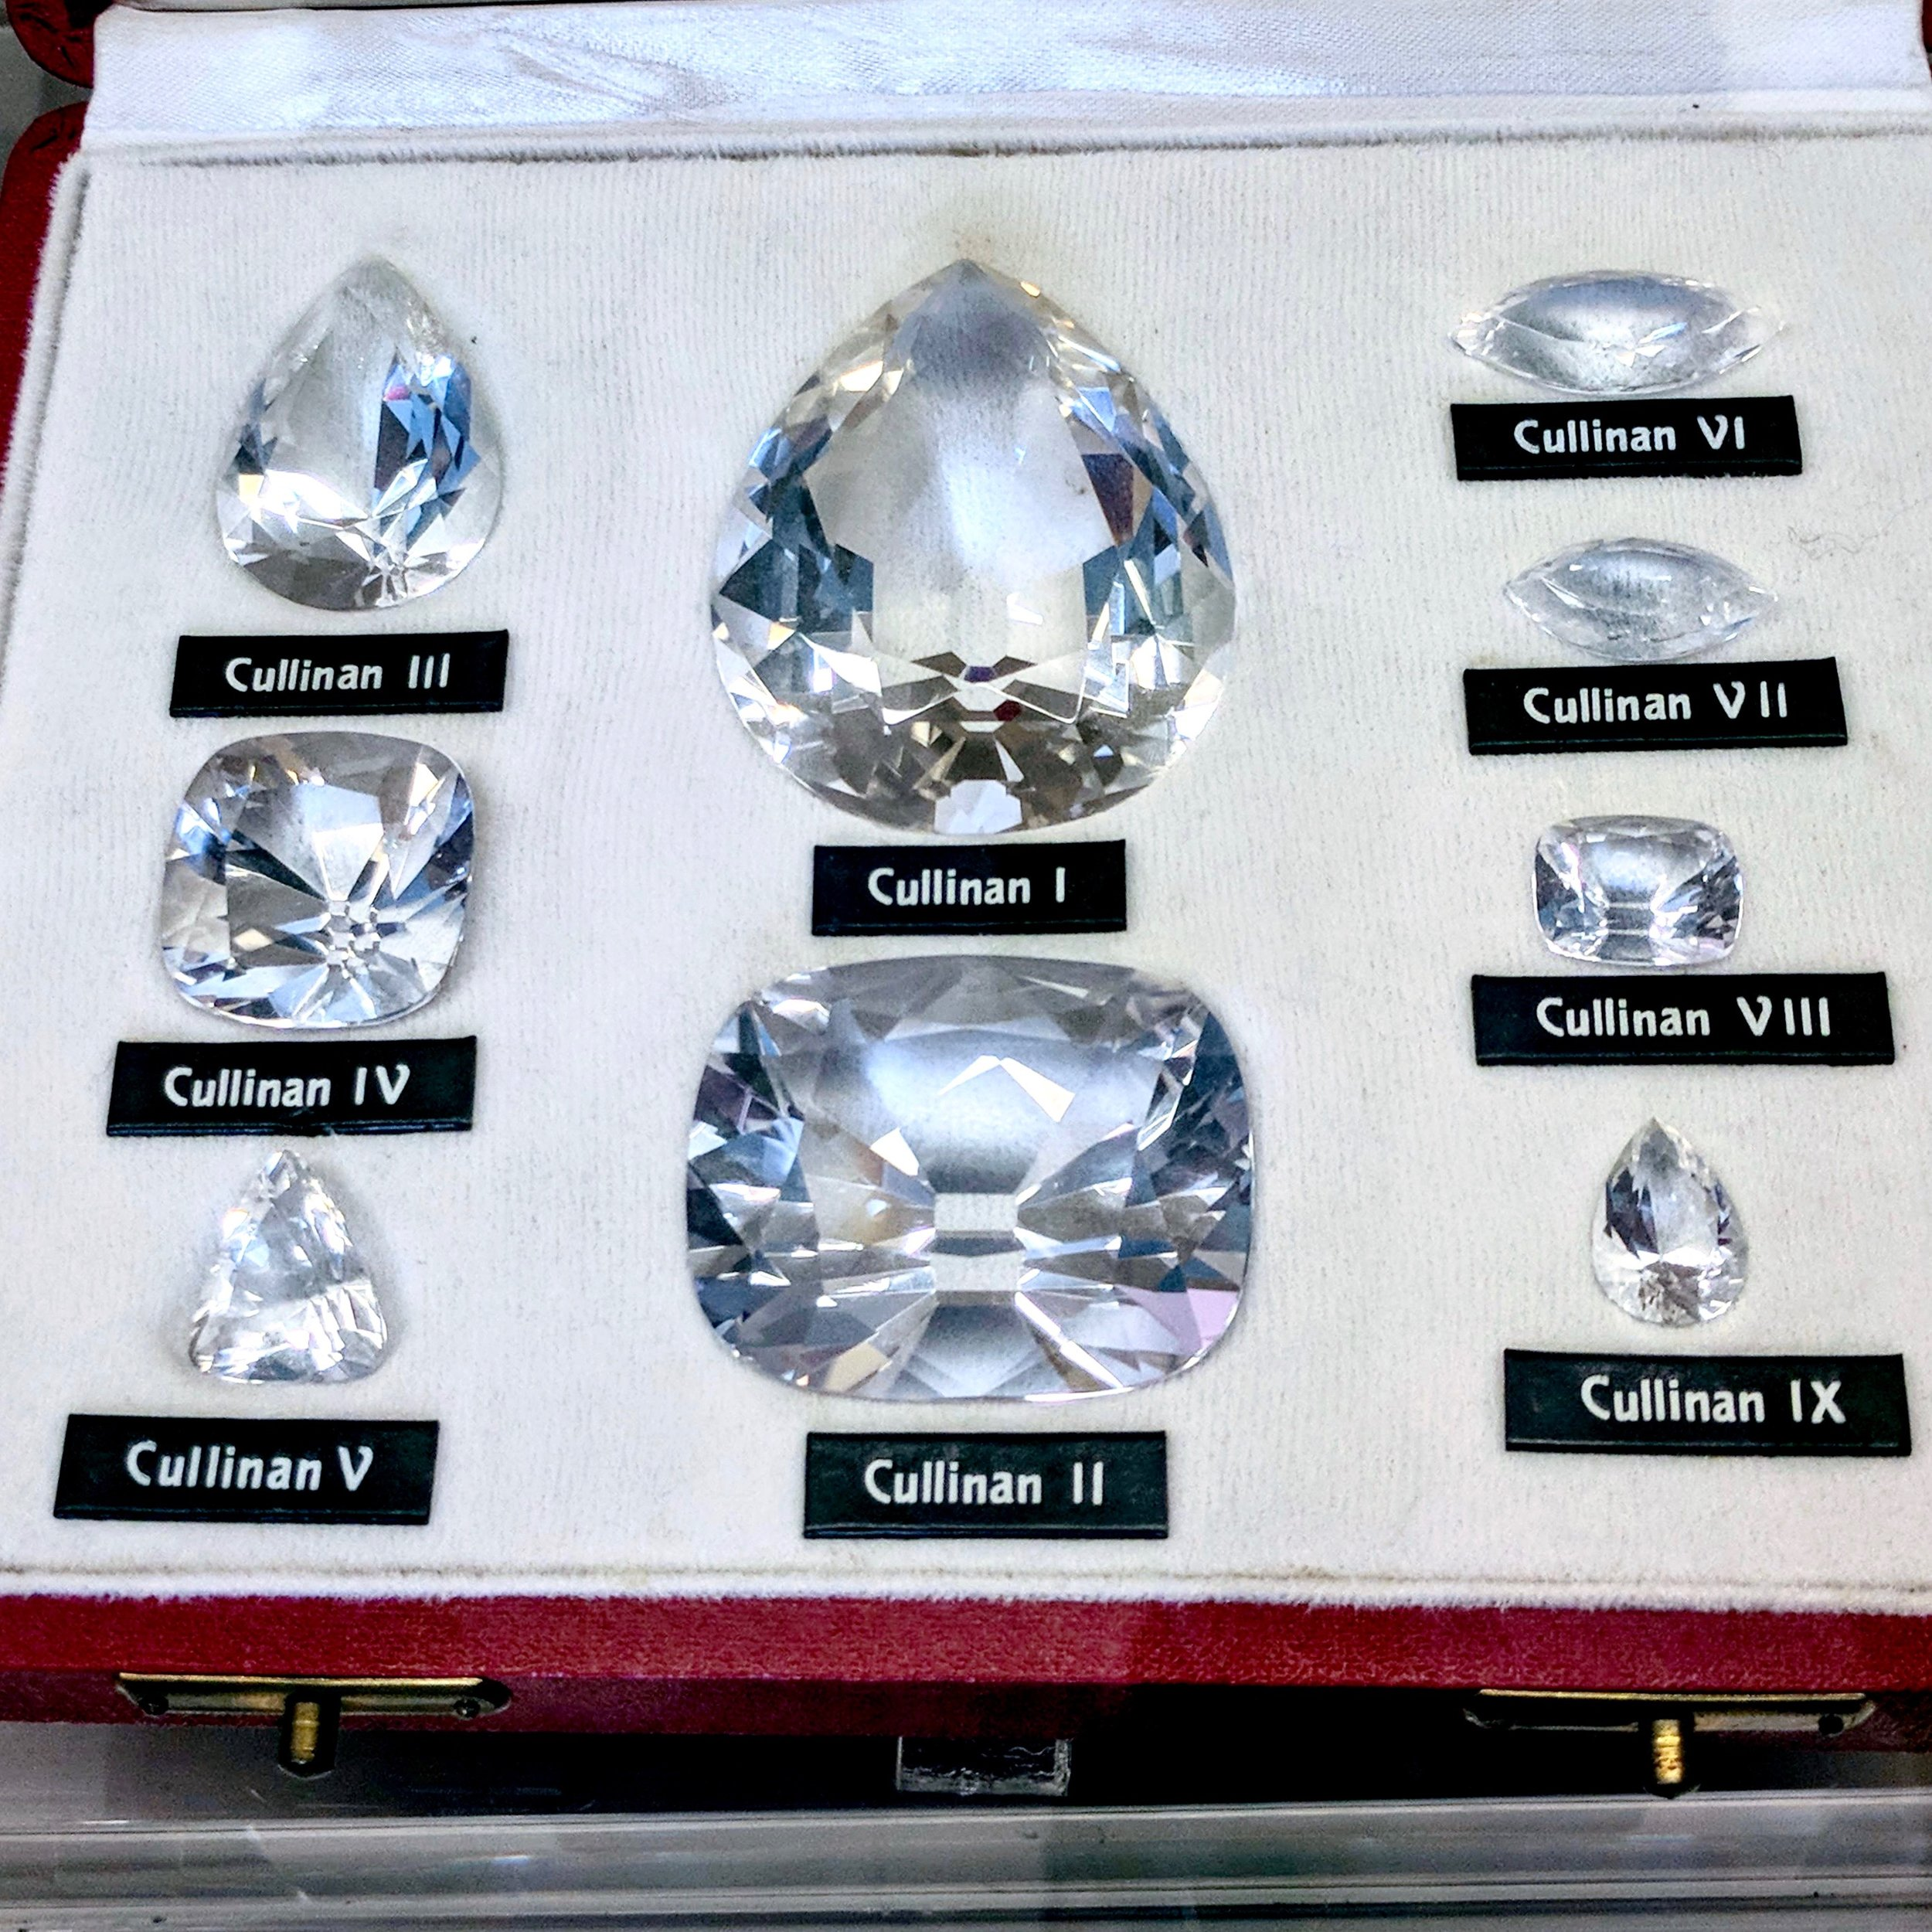 Replica of the 9 largest stones polished from the Cullinan diamond. Image: Taken by Reena Ahluwalia, at L'École des Arts Joailliers, Van Cleef & Arpels. Paris